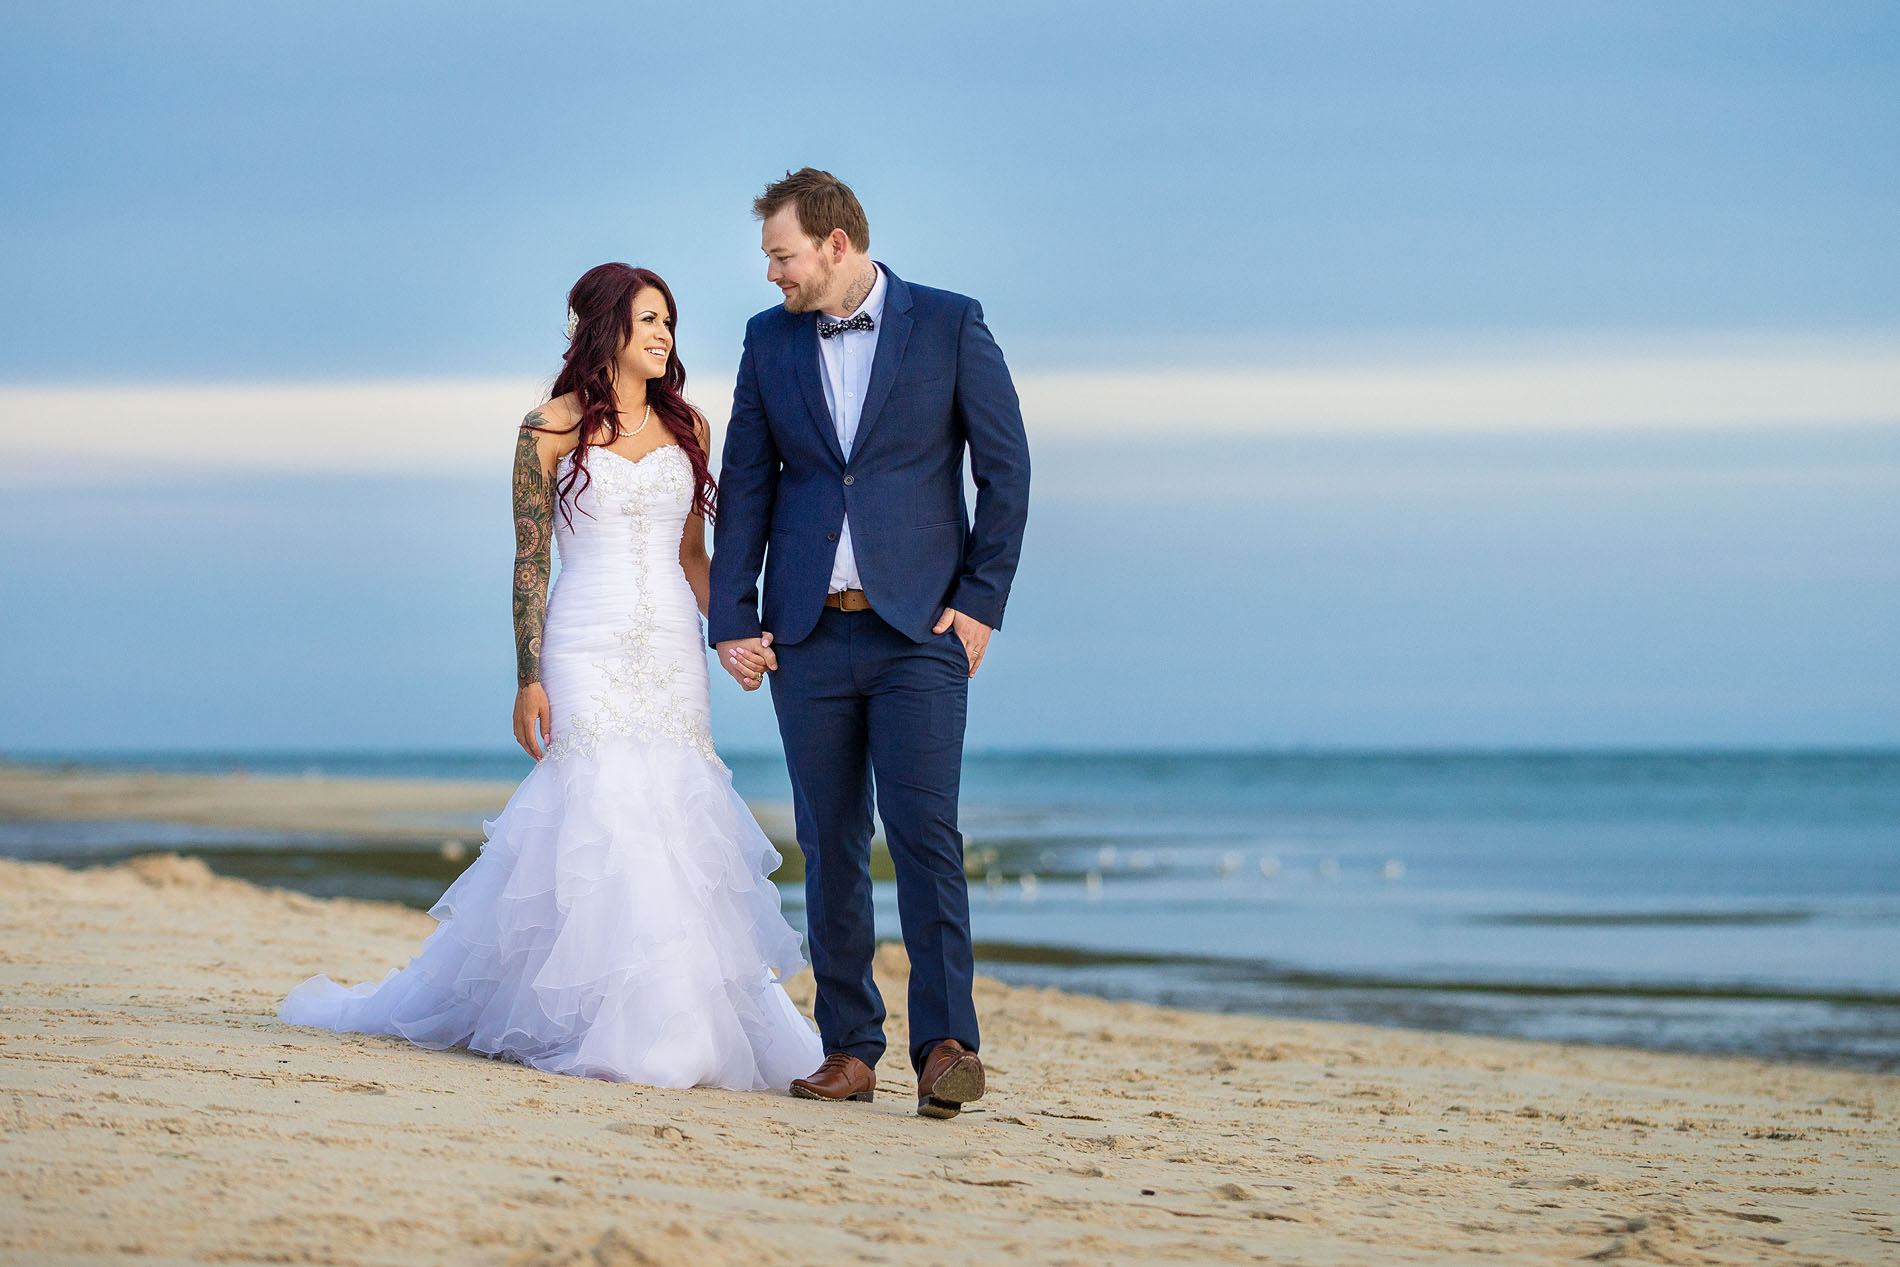 170909 0653 bribie island bongaree jetty tattoo tats tattooed bride beach modern couple blue